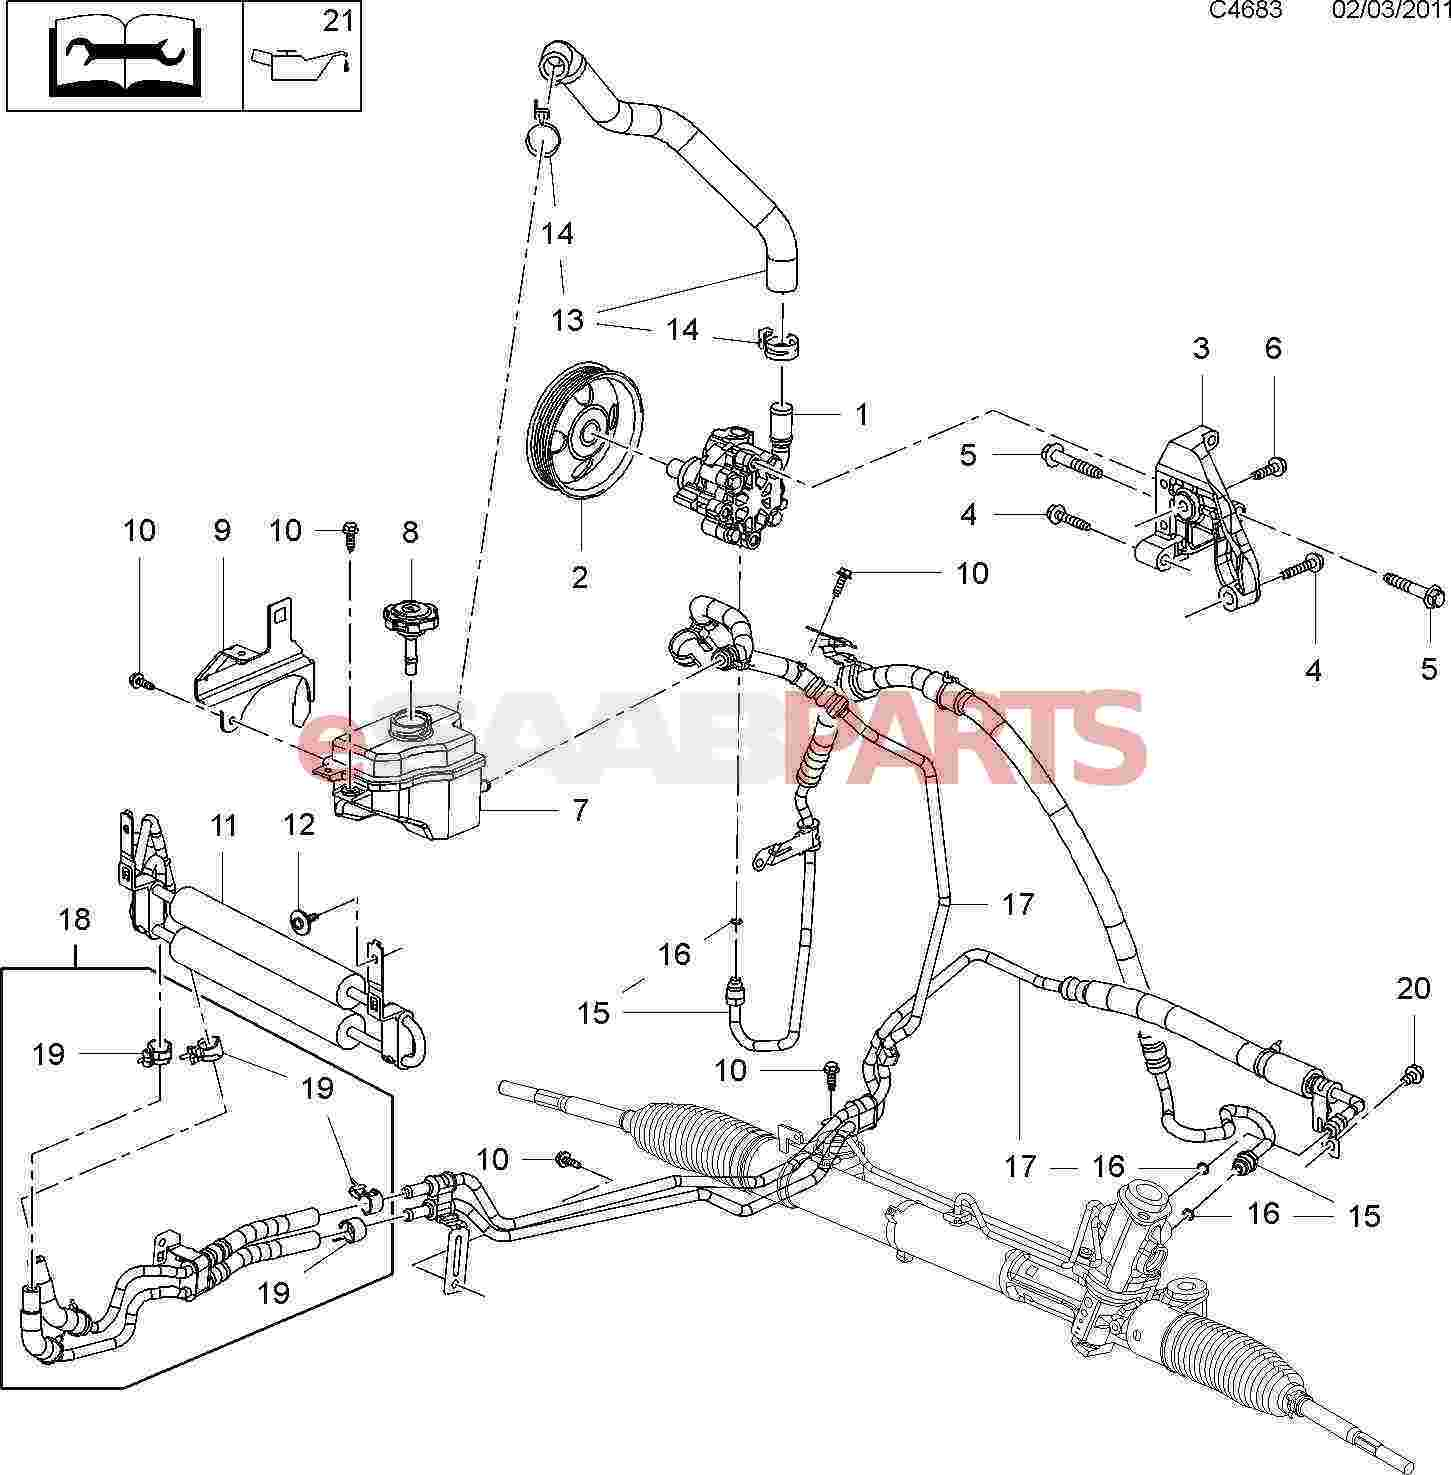 radio wiring diagram together with ford ranger radio wiring diagram